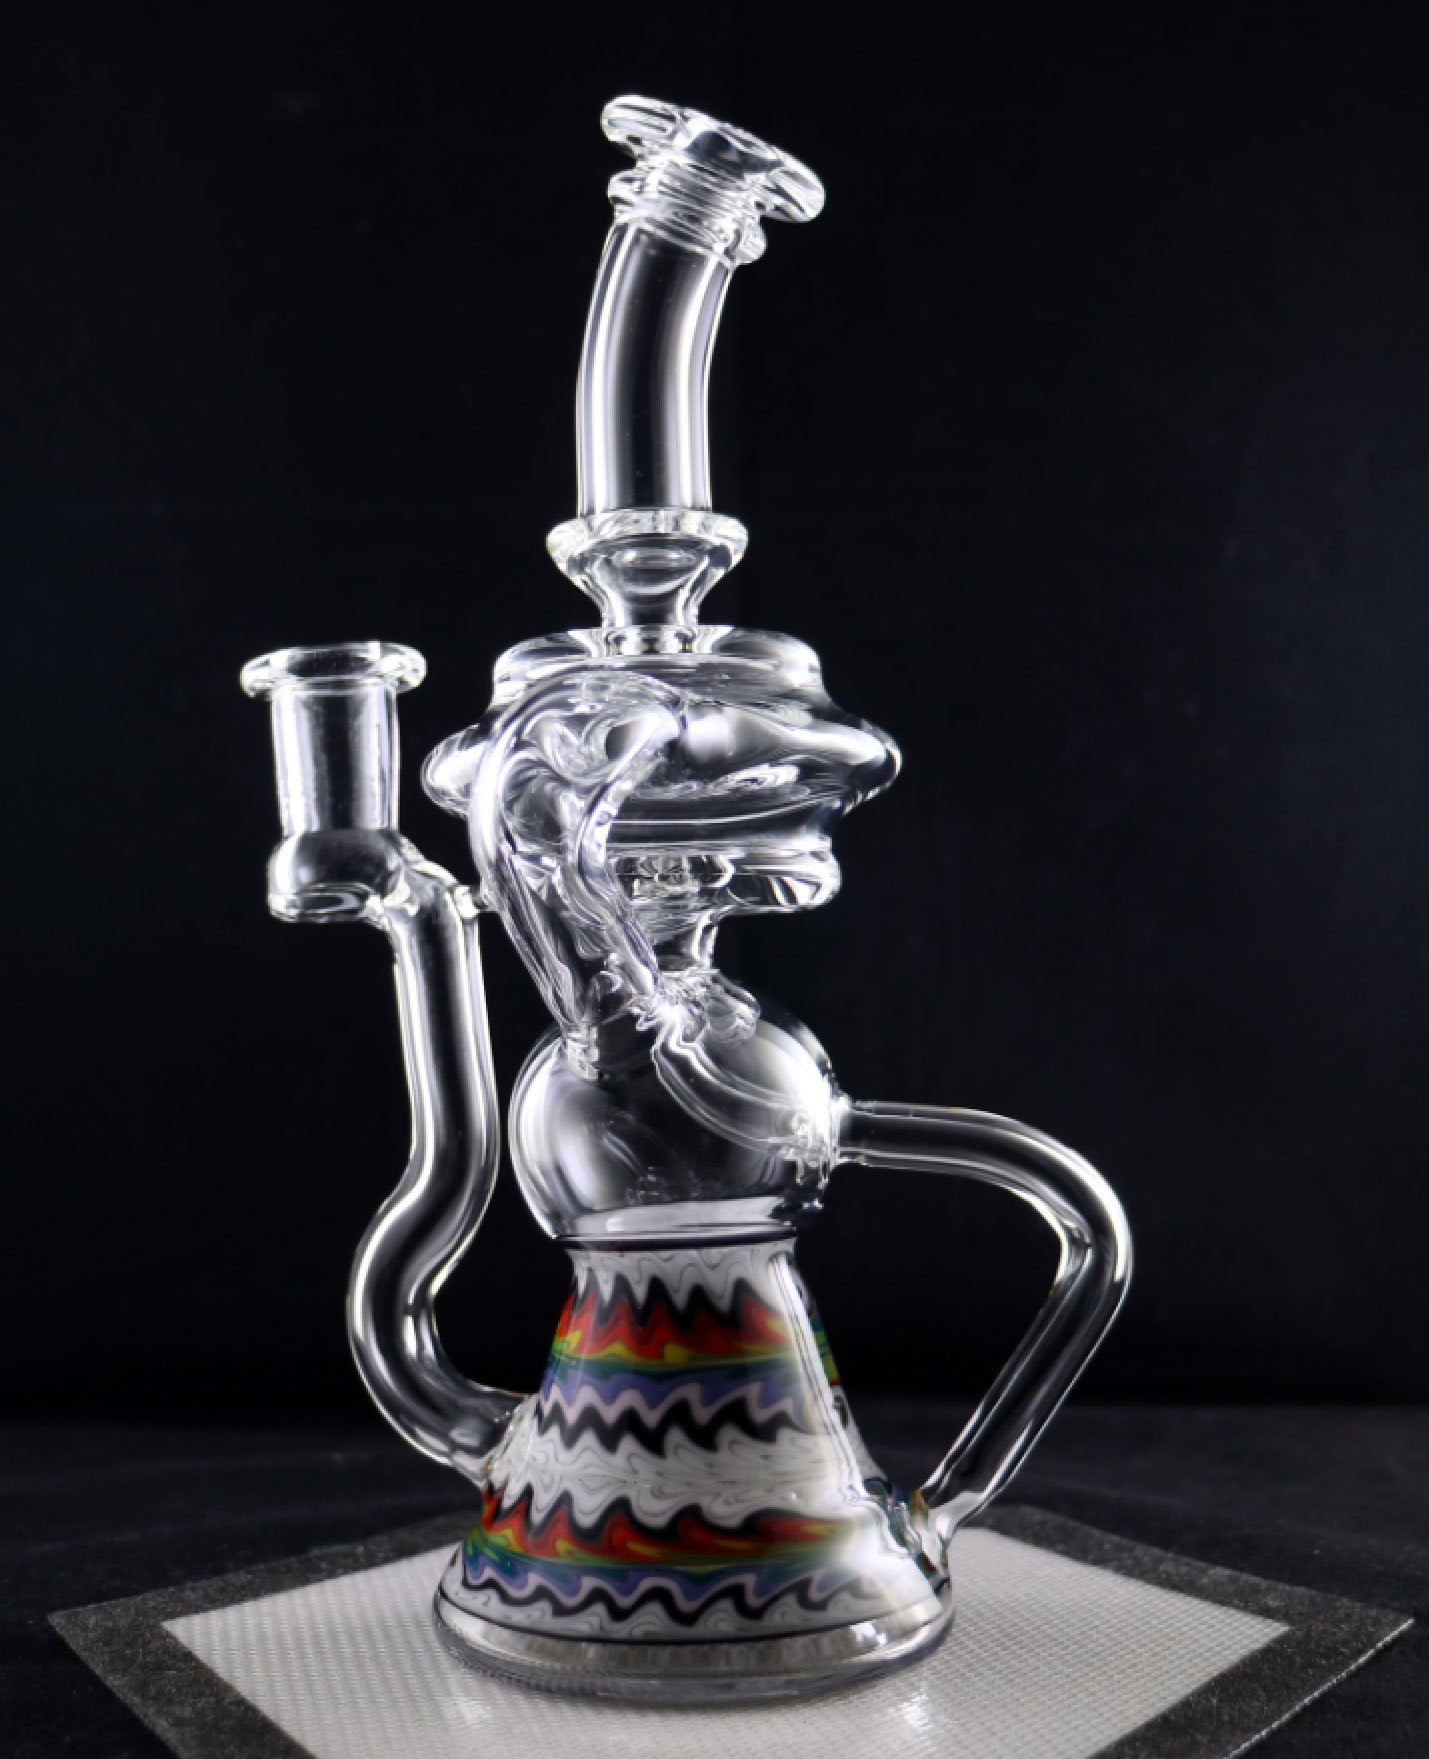 Jeff Williams – Klein Recycler